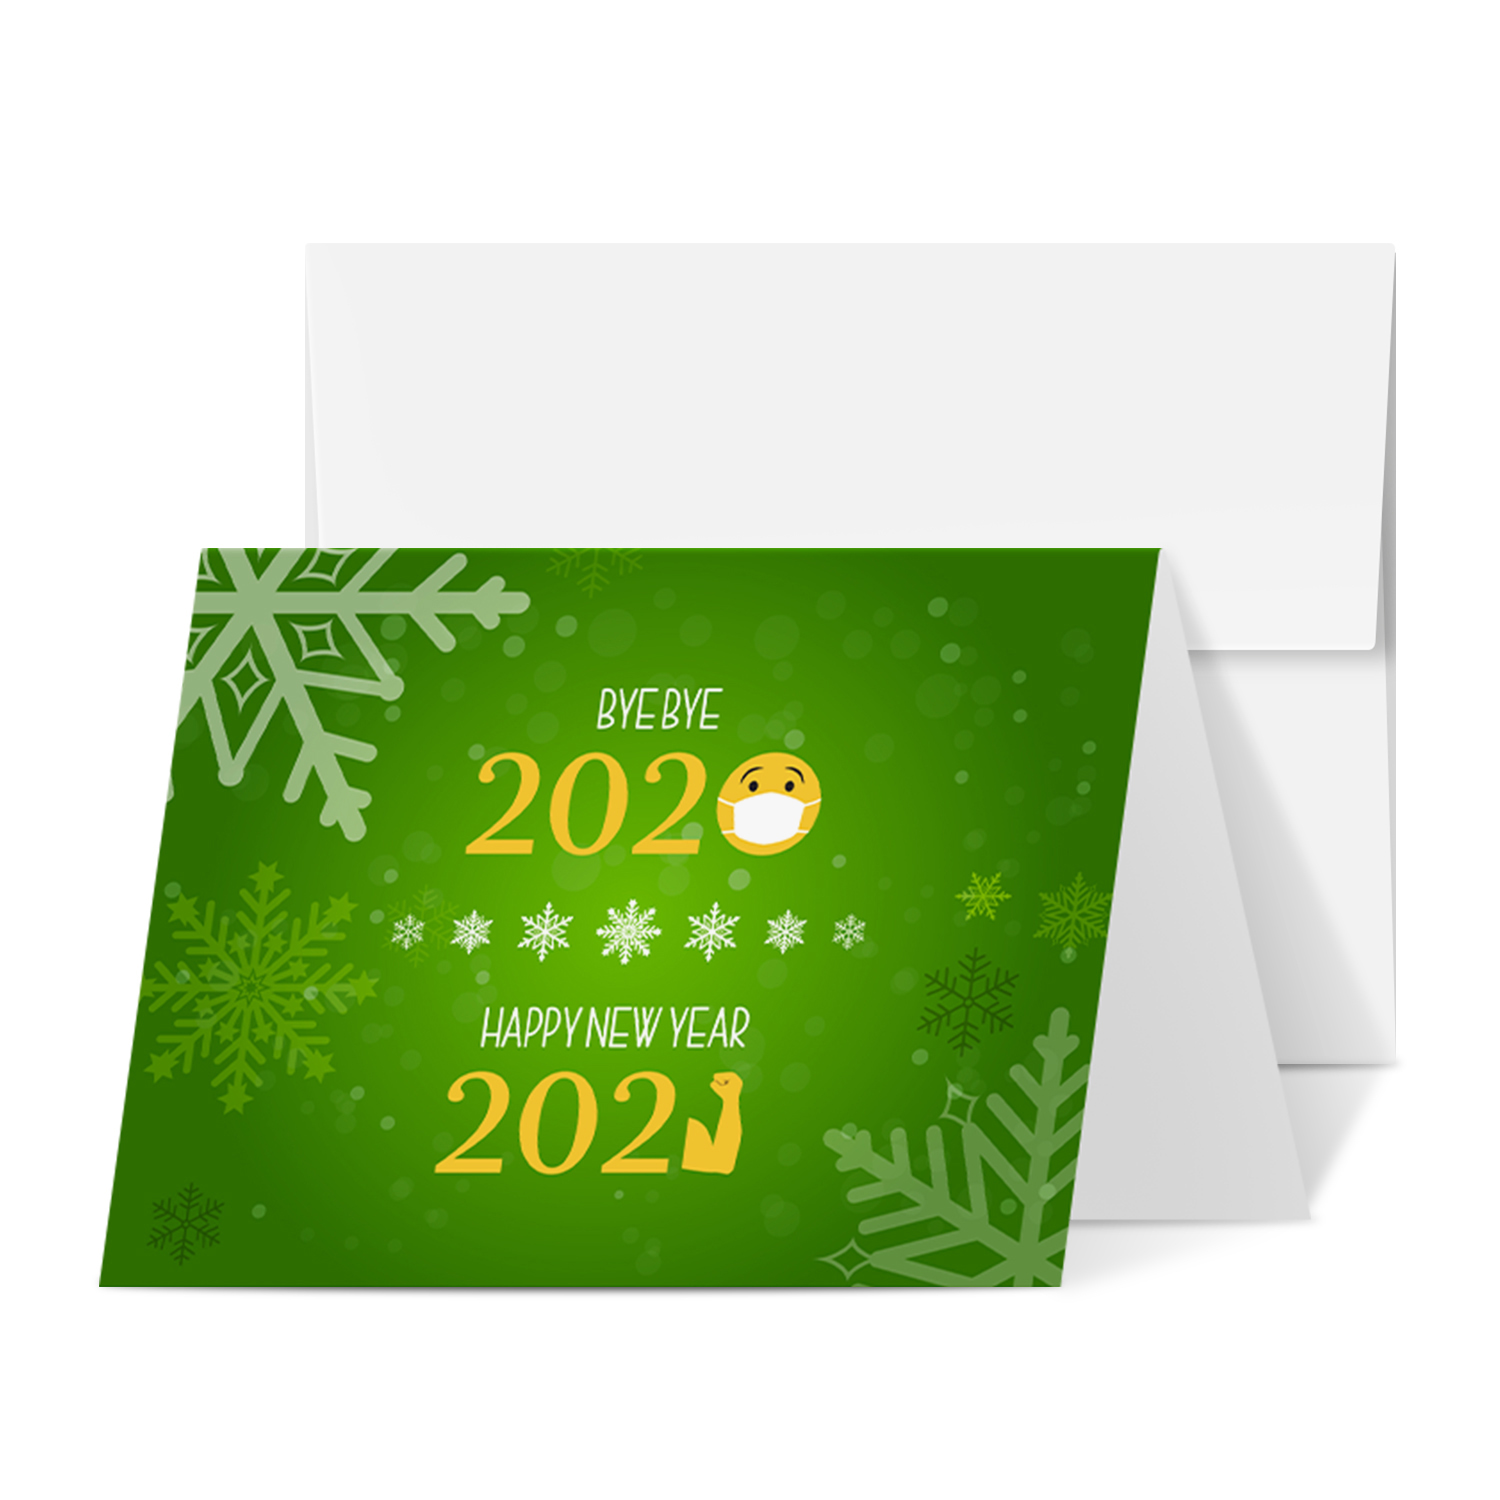 Happy New Year 2021 Cards